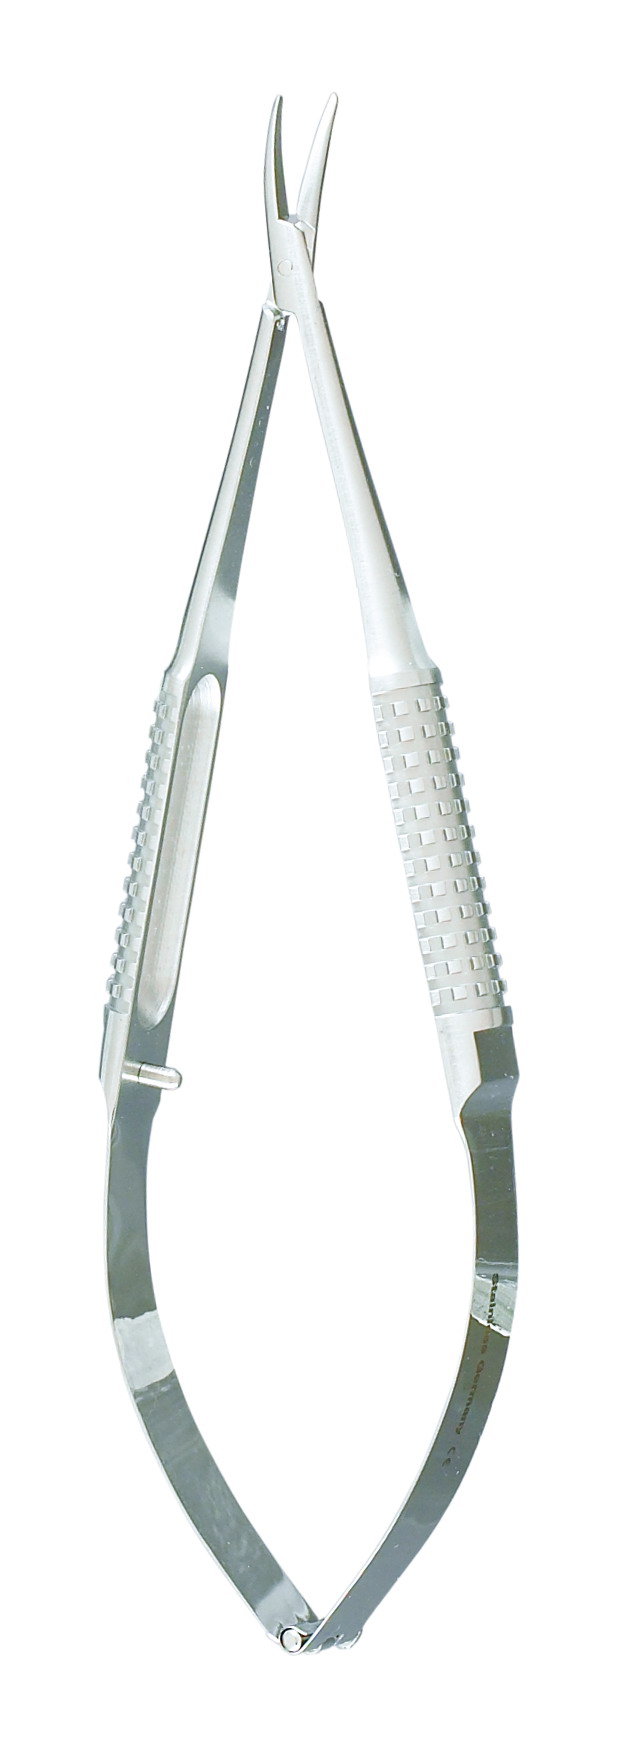 barraquer-needle-holder-curved-10-mm-wide-hollow-round-handle-without-lock-18-1838-miltex.jpg